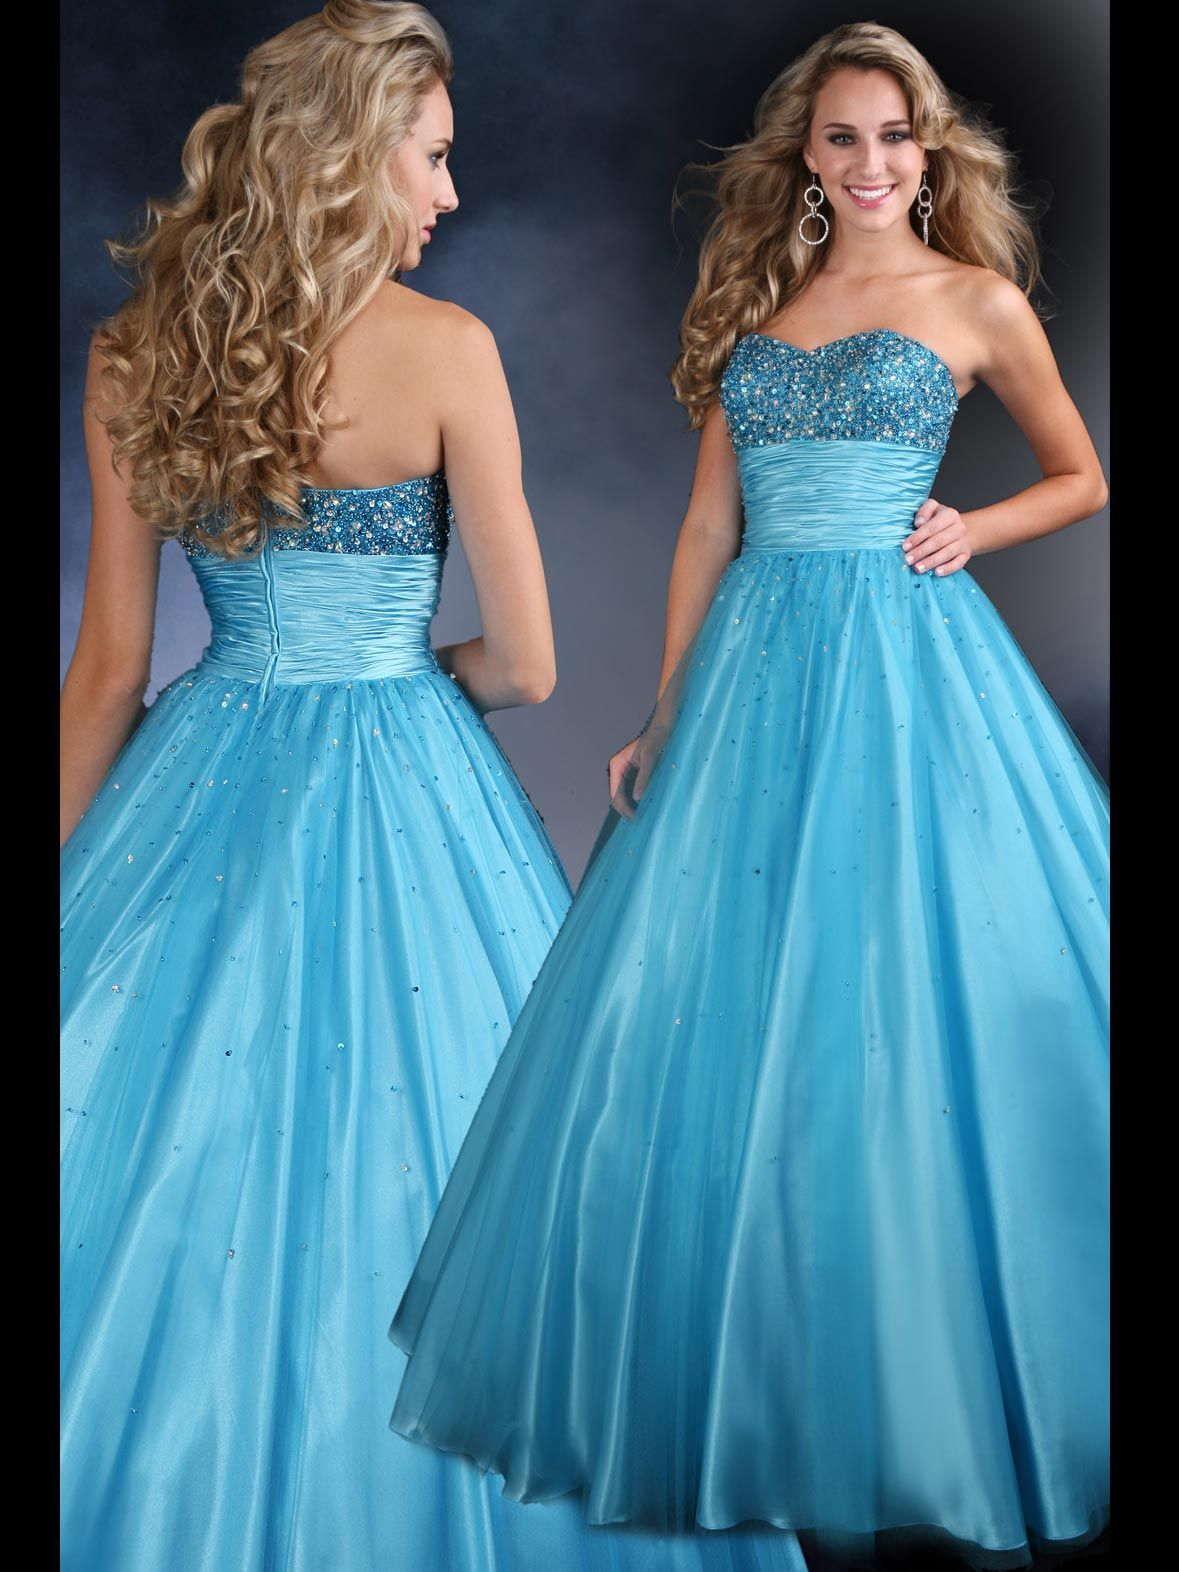 Heavenly tullecharmeuse ball gown sparkle by davinci prom uc